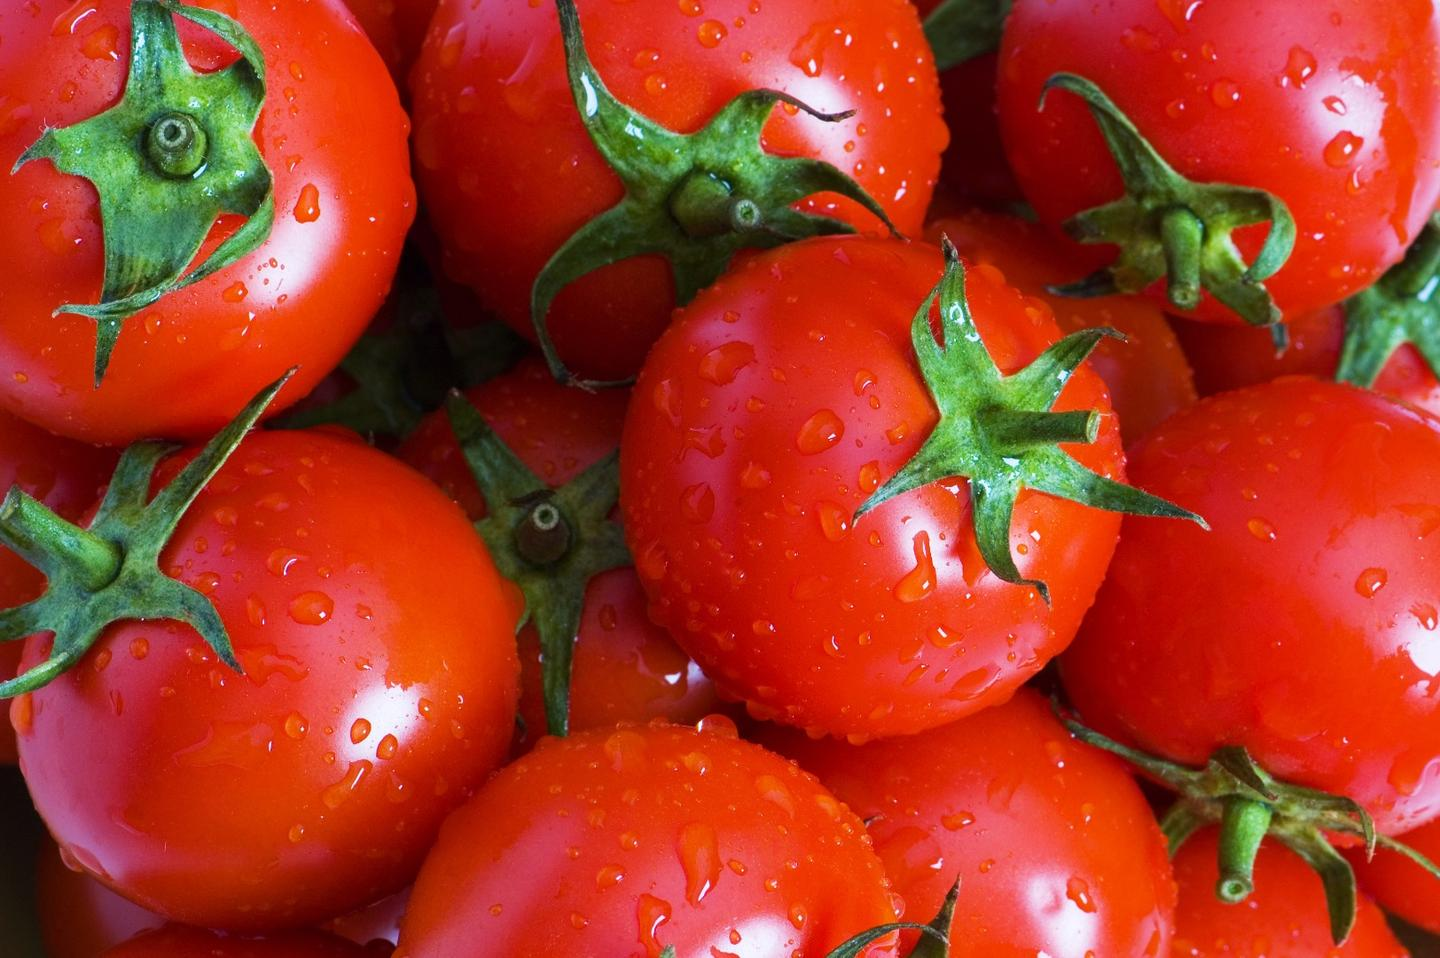 Nutrients in tomatoes and other fresh fruits may help restore lung function